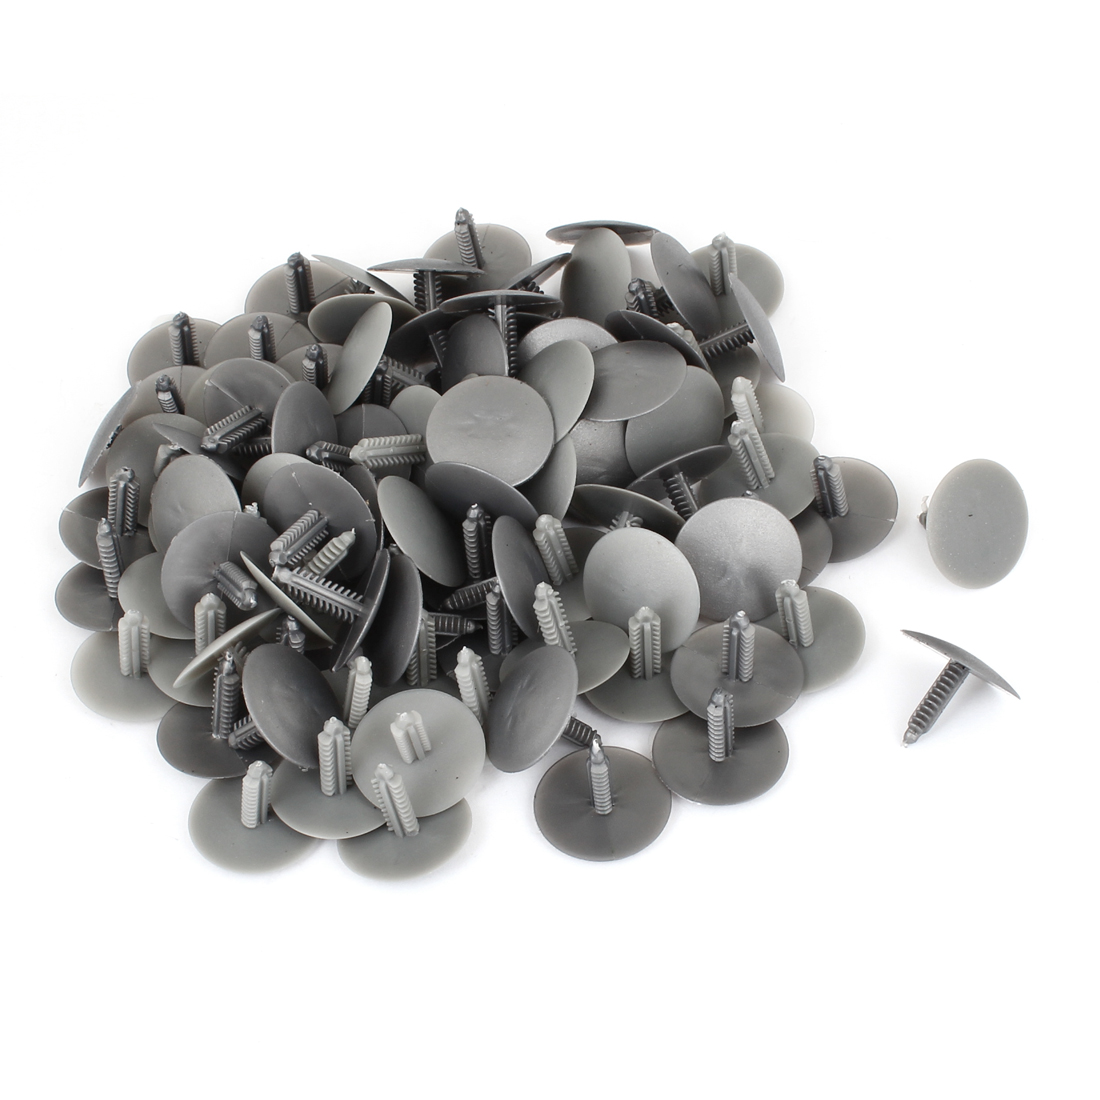 100 Pcs Vehicle 6mm Hole Gray Door Plastic Replacement Rivets Fasteners